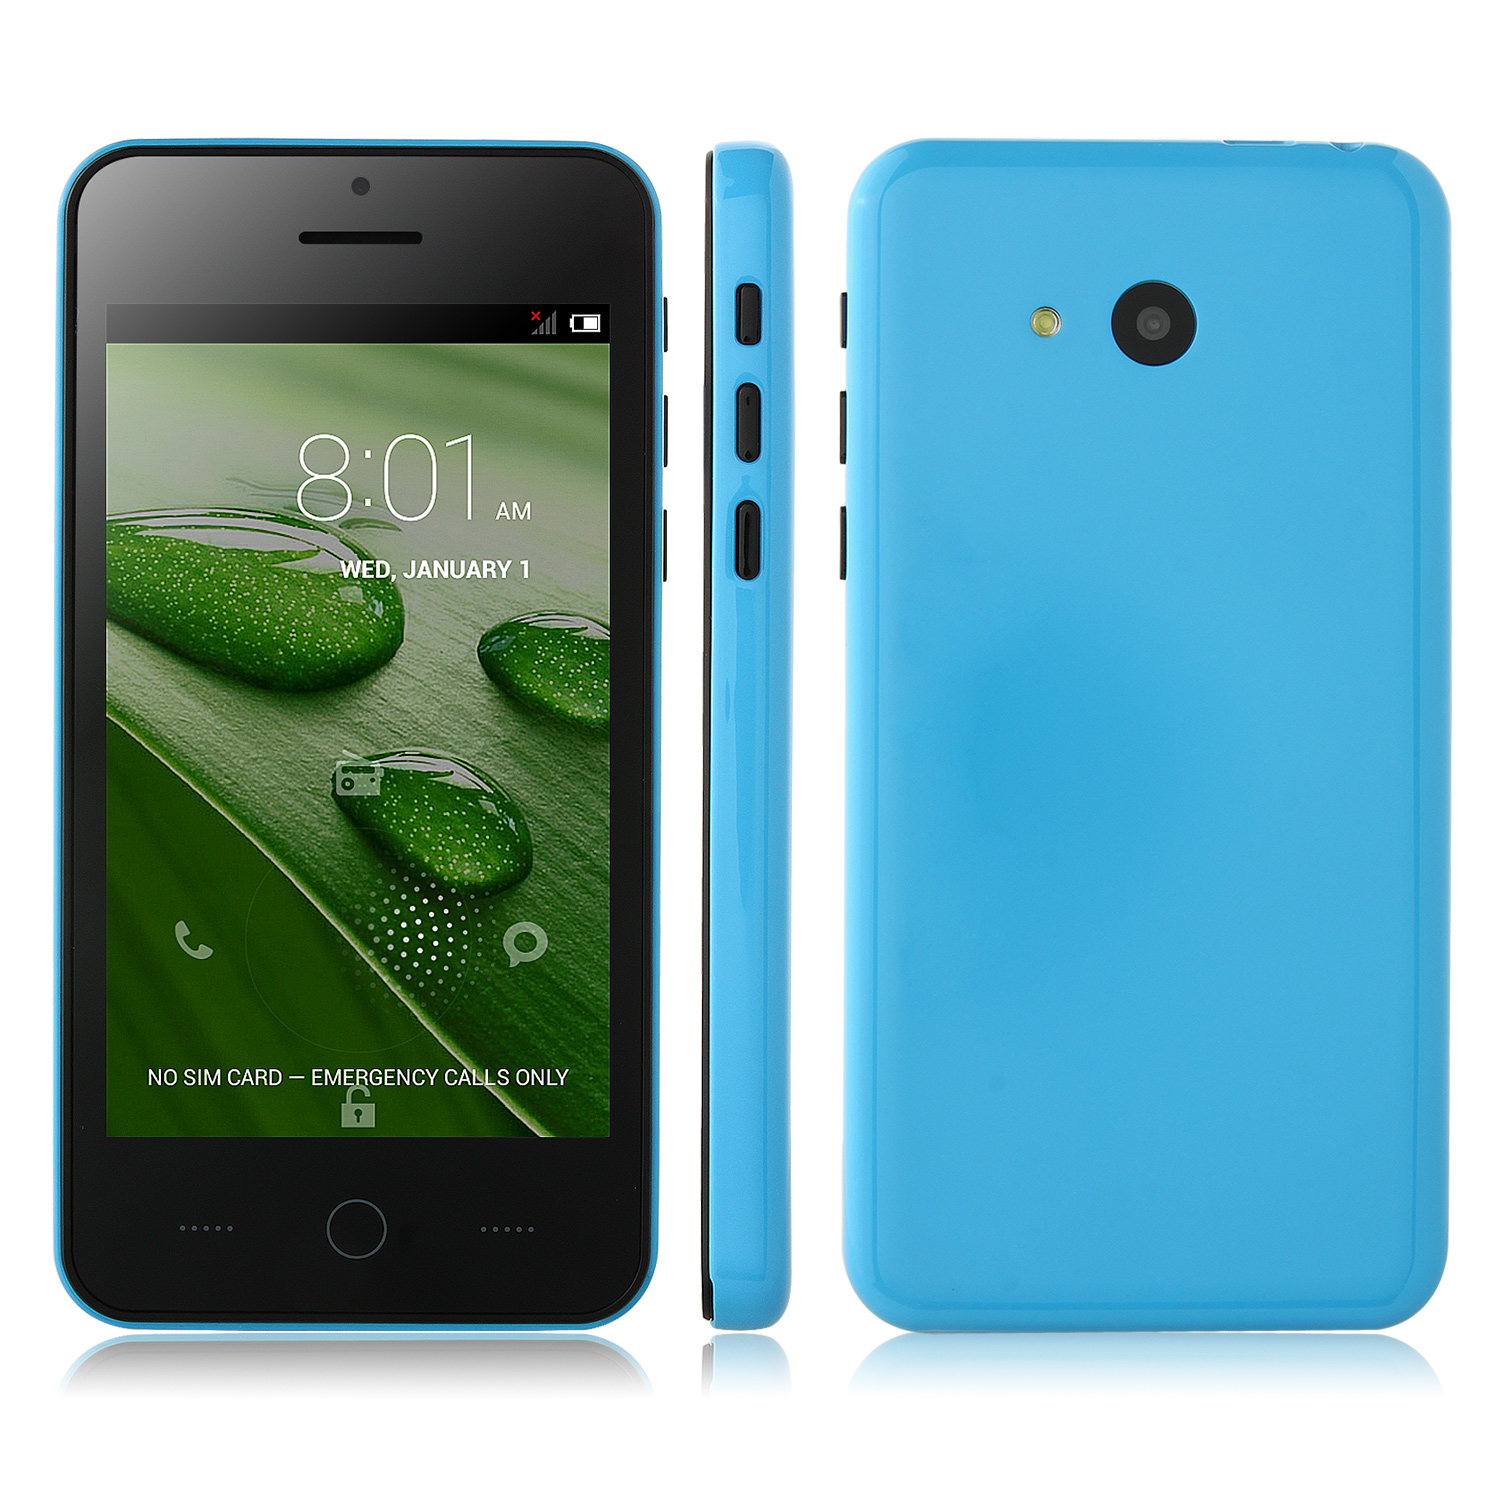 Tengda A18 Smartphone Android 4.2 MTK6572W 4.0 Inch 3G GPS Play Store Blue